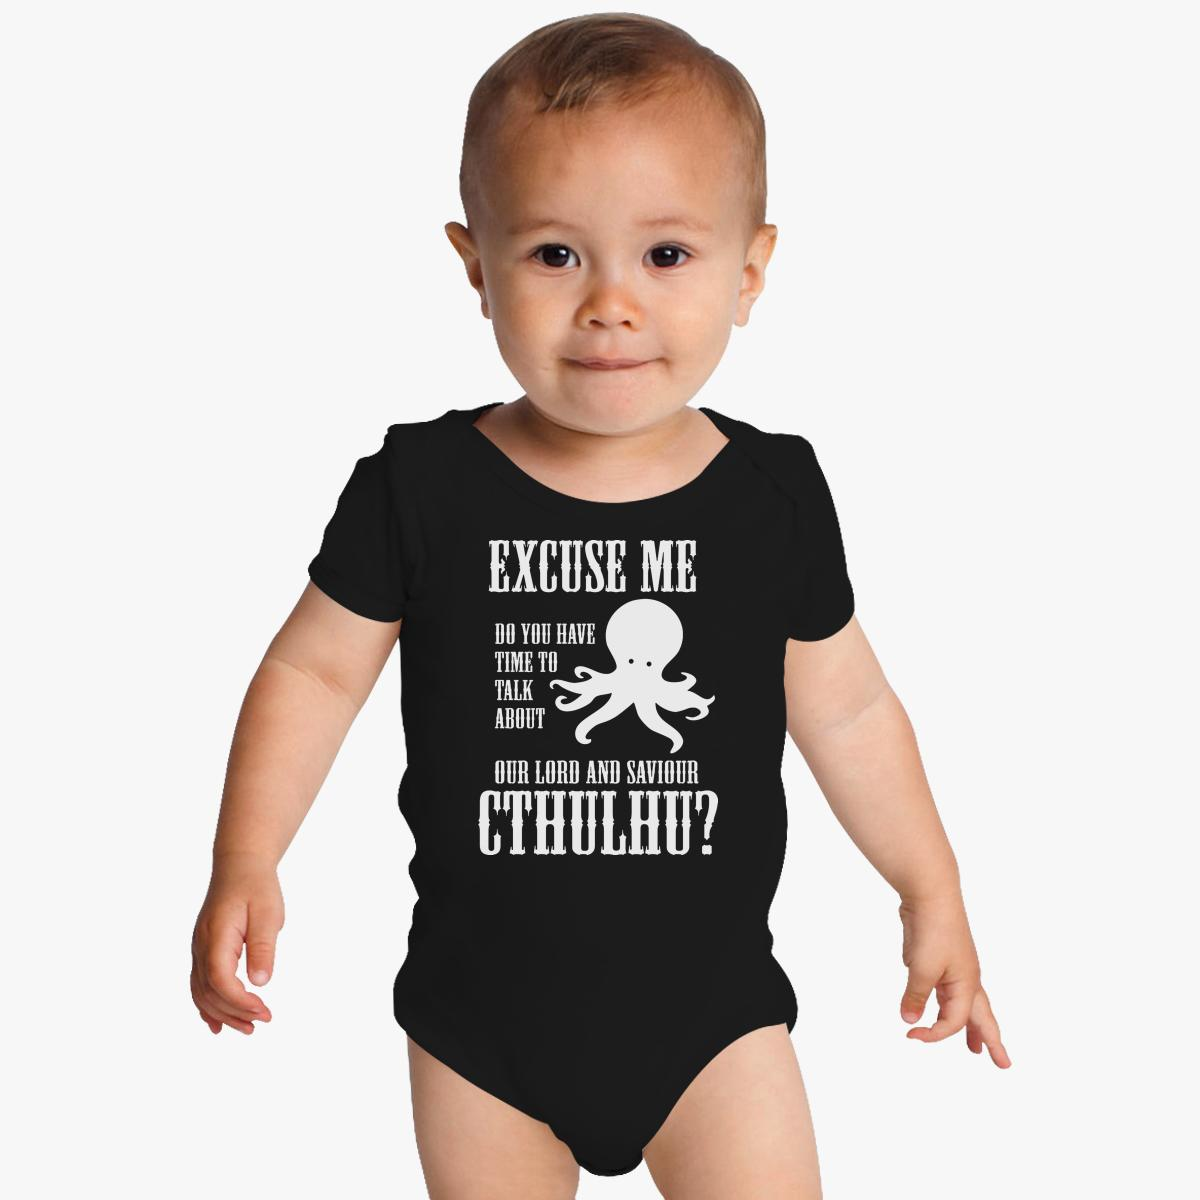 our lord and saviour cthulhu baby onesies kidozi com